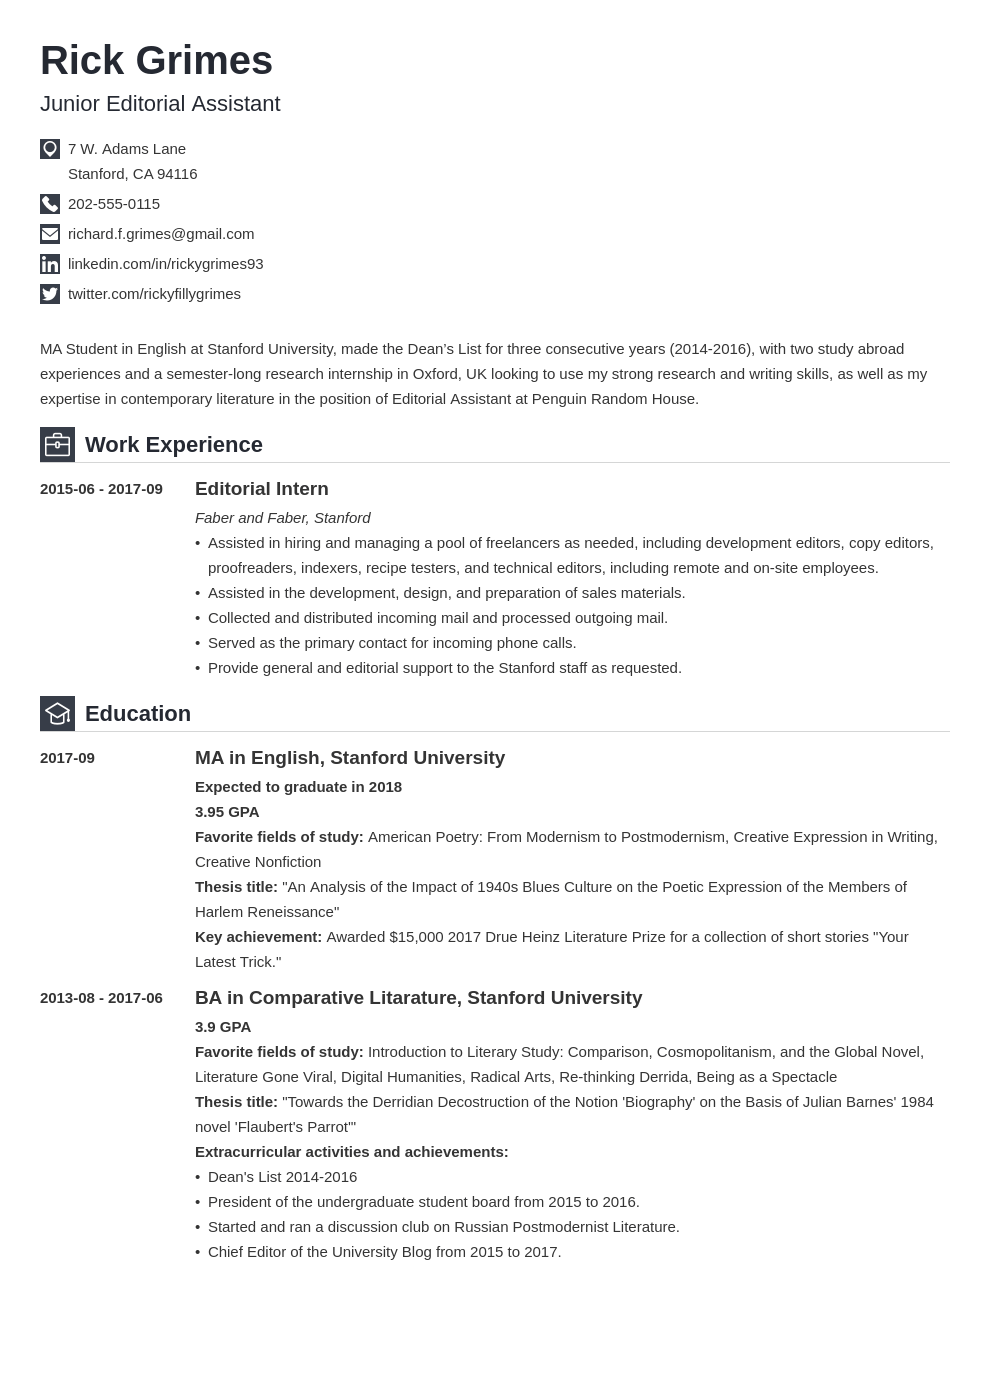 Graduate Student CV Example (Academic CV Template for Grads)